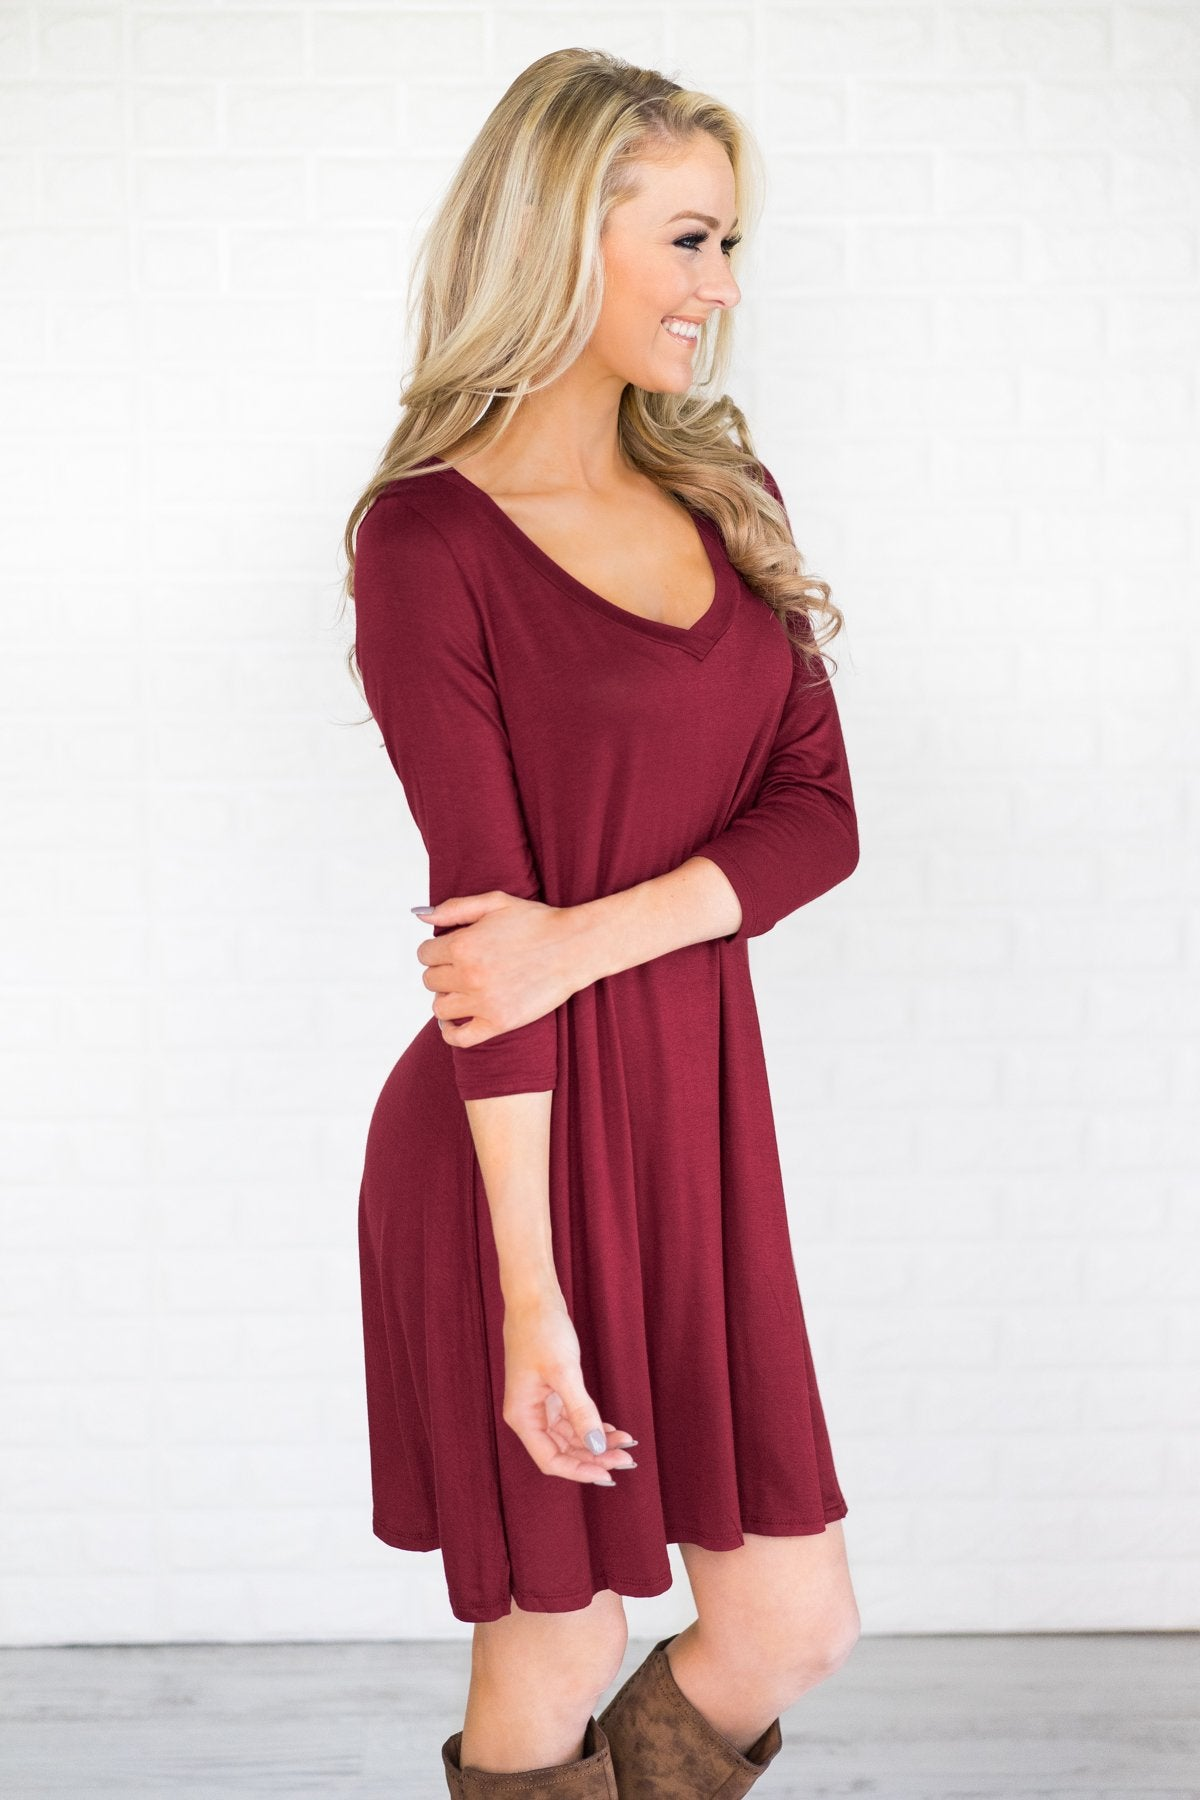 Go-To Burgundy V-Neck Dress